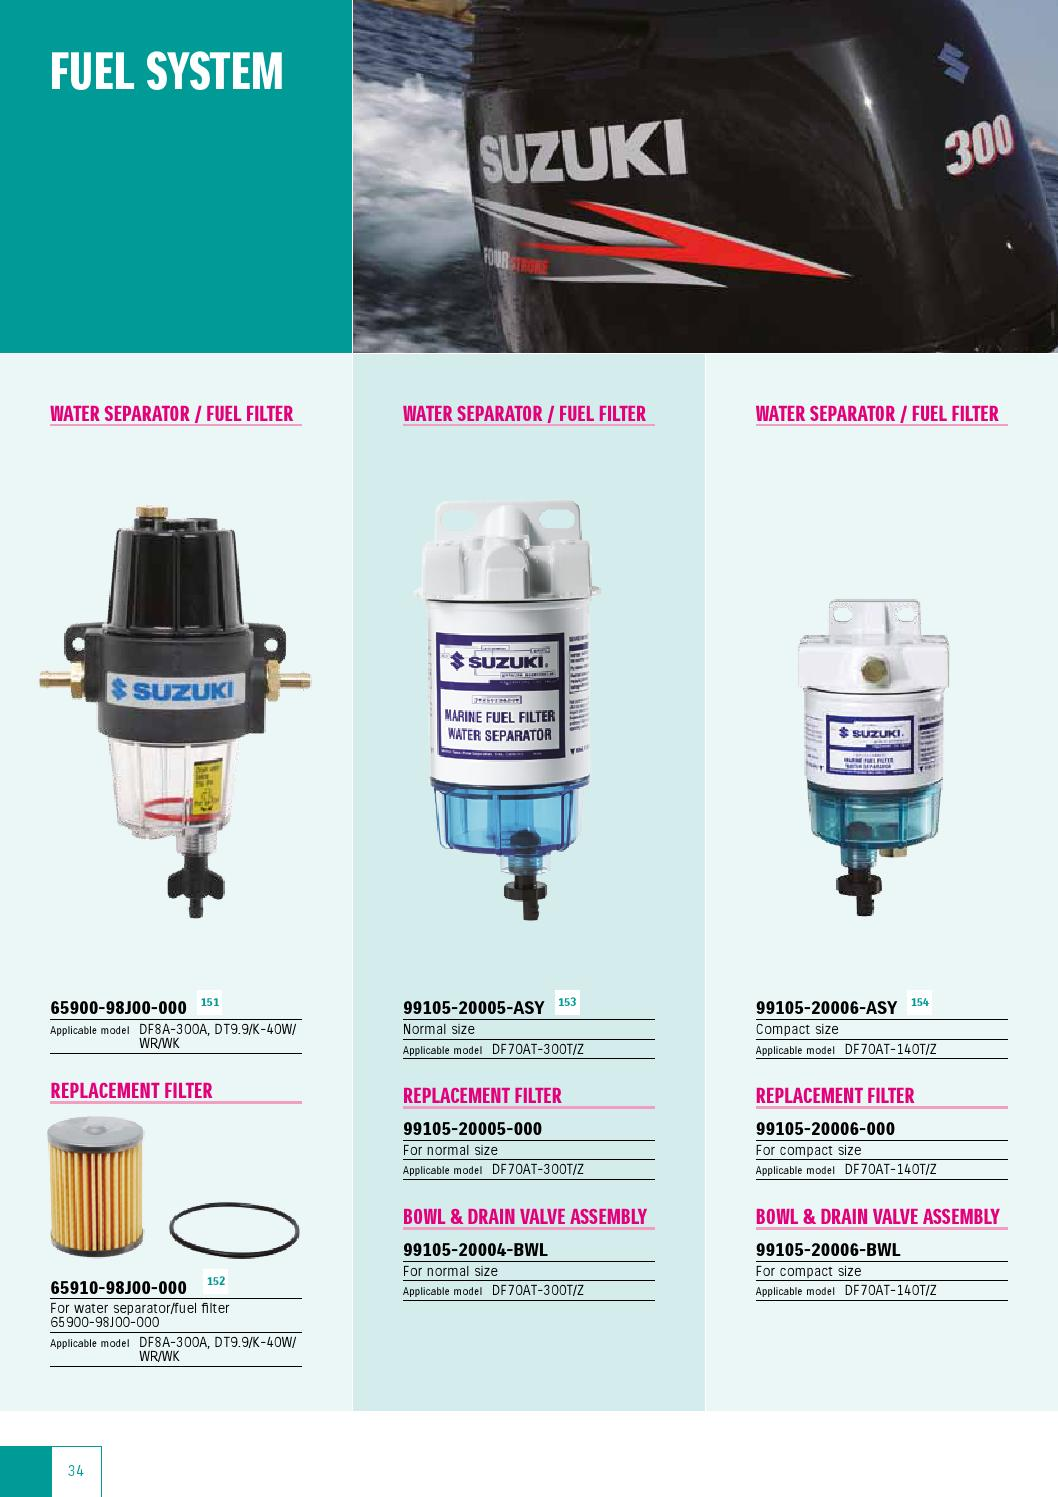 Suzukimarine Zubehrkatalog By Autoglobal Ag Issuu Compact Fuel Filters Water Separators